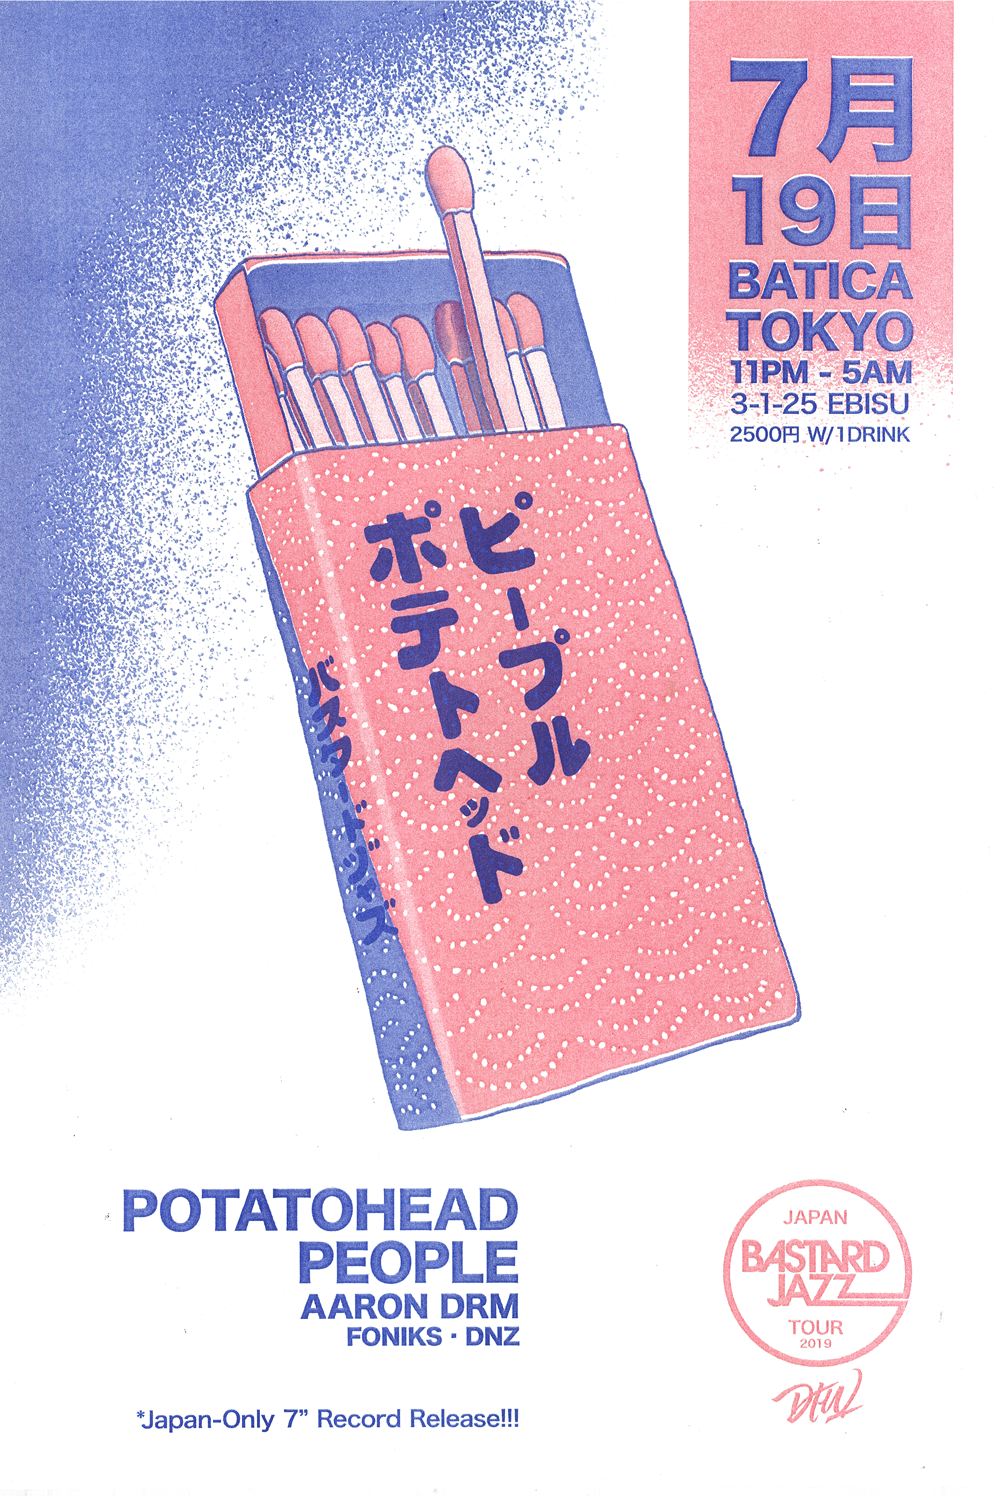 Potatohead People Japan Tour